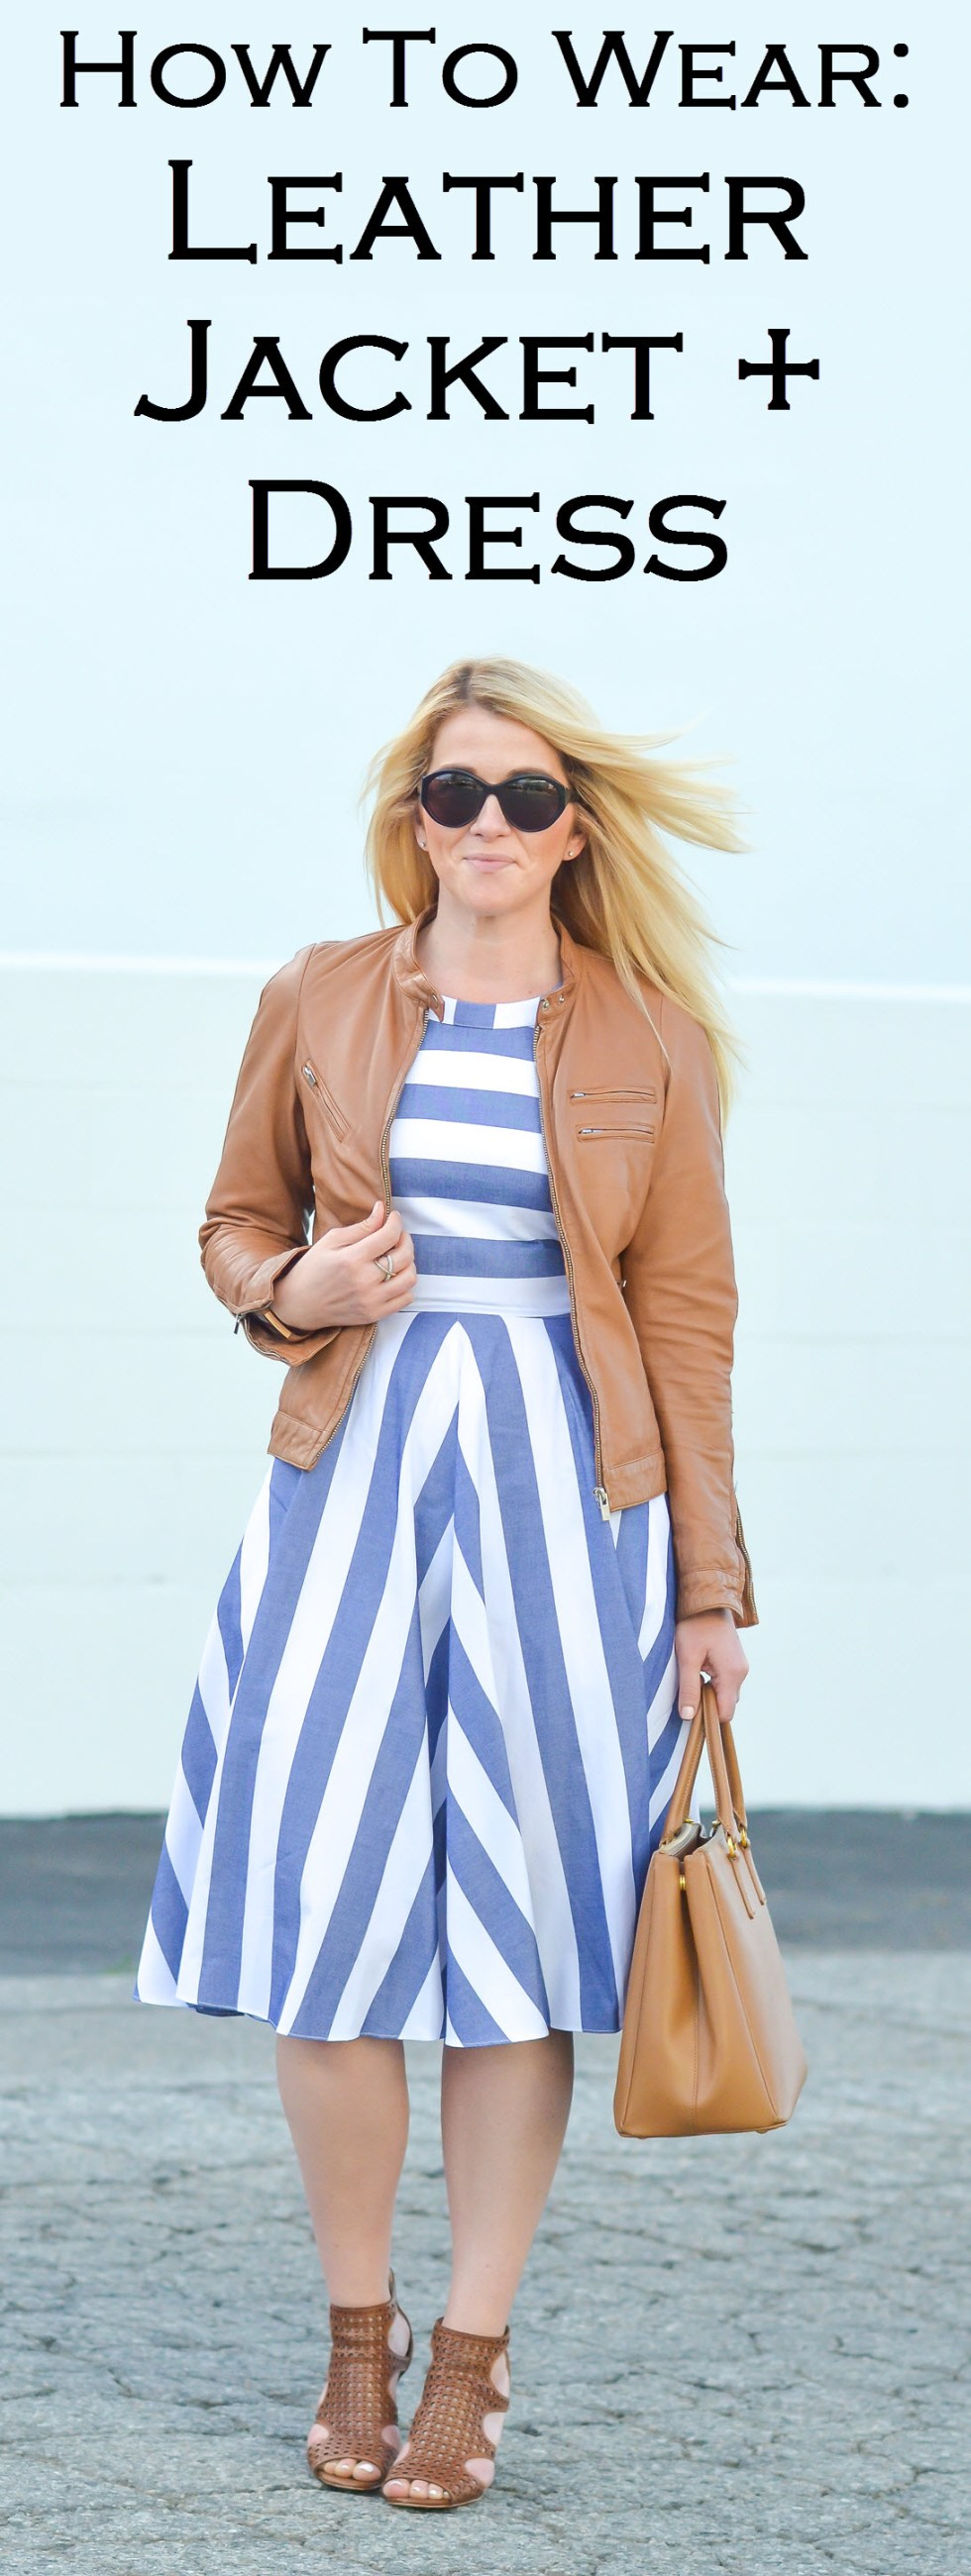 How to Wear Brown Leather Jacket and Dress Outfit Ideas. Blue and White striped dress with brown leather accessories and shoes!